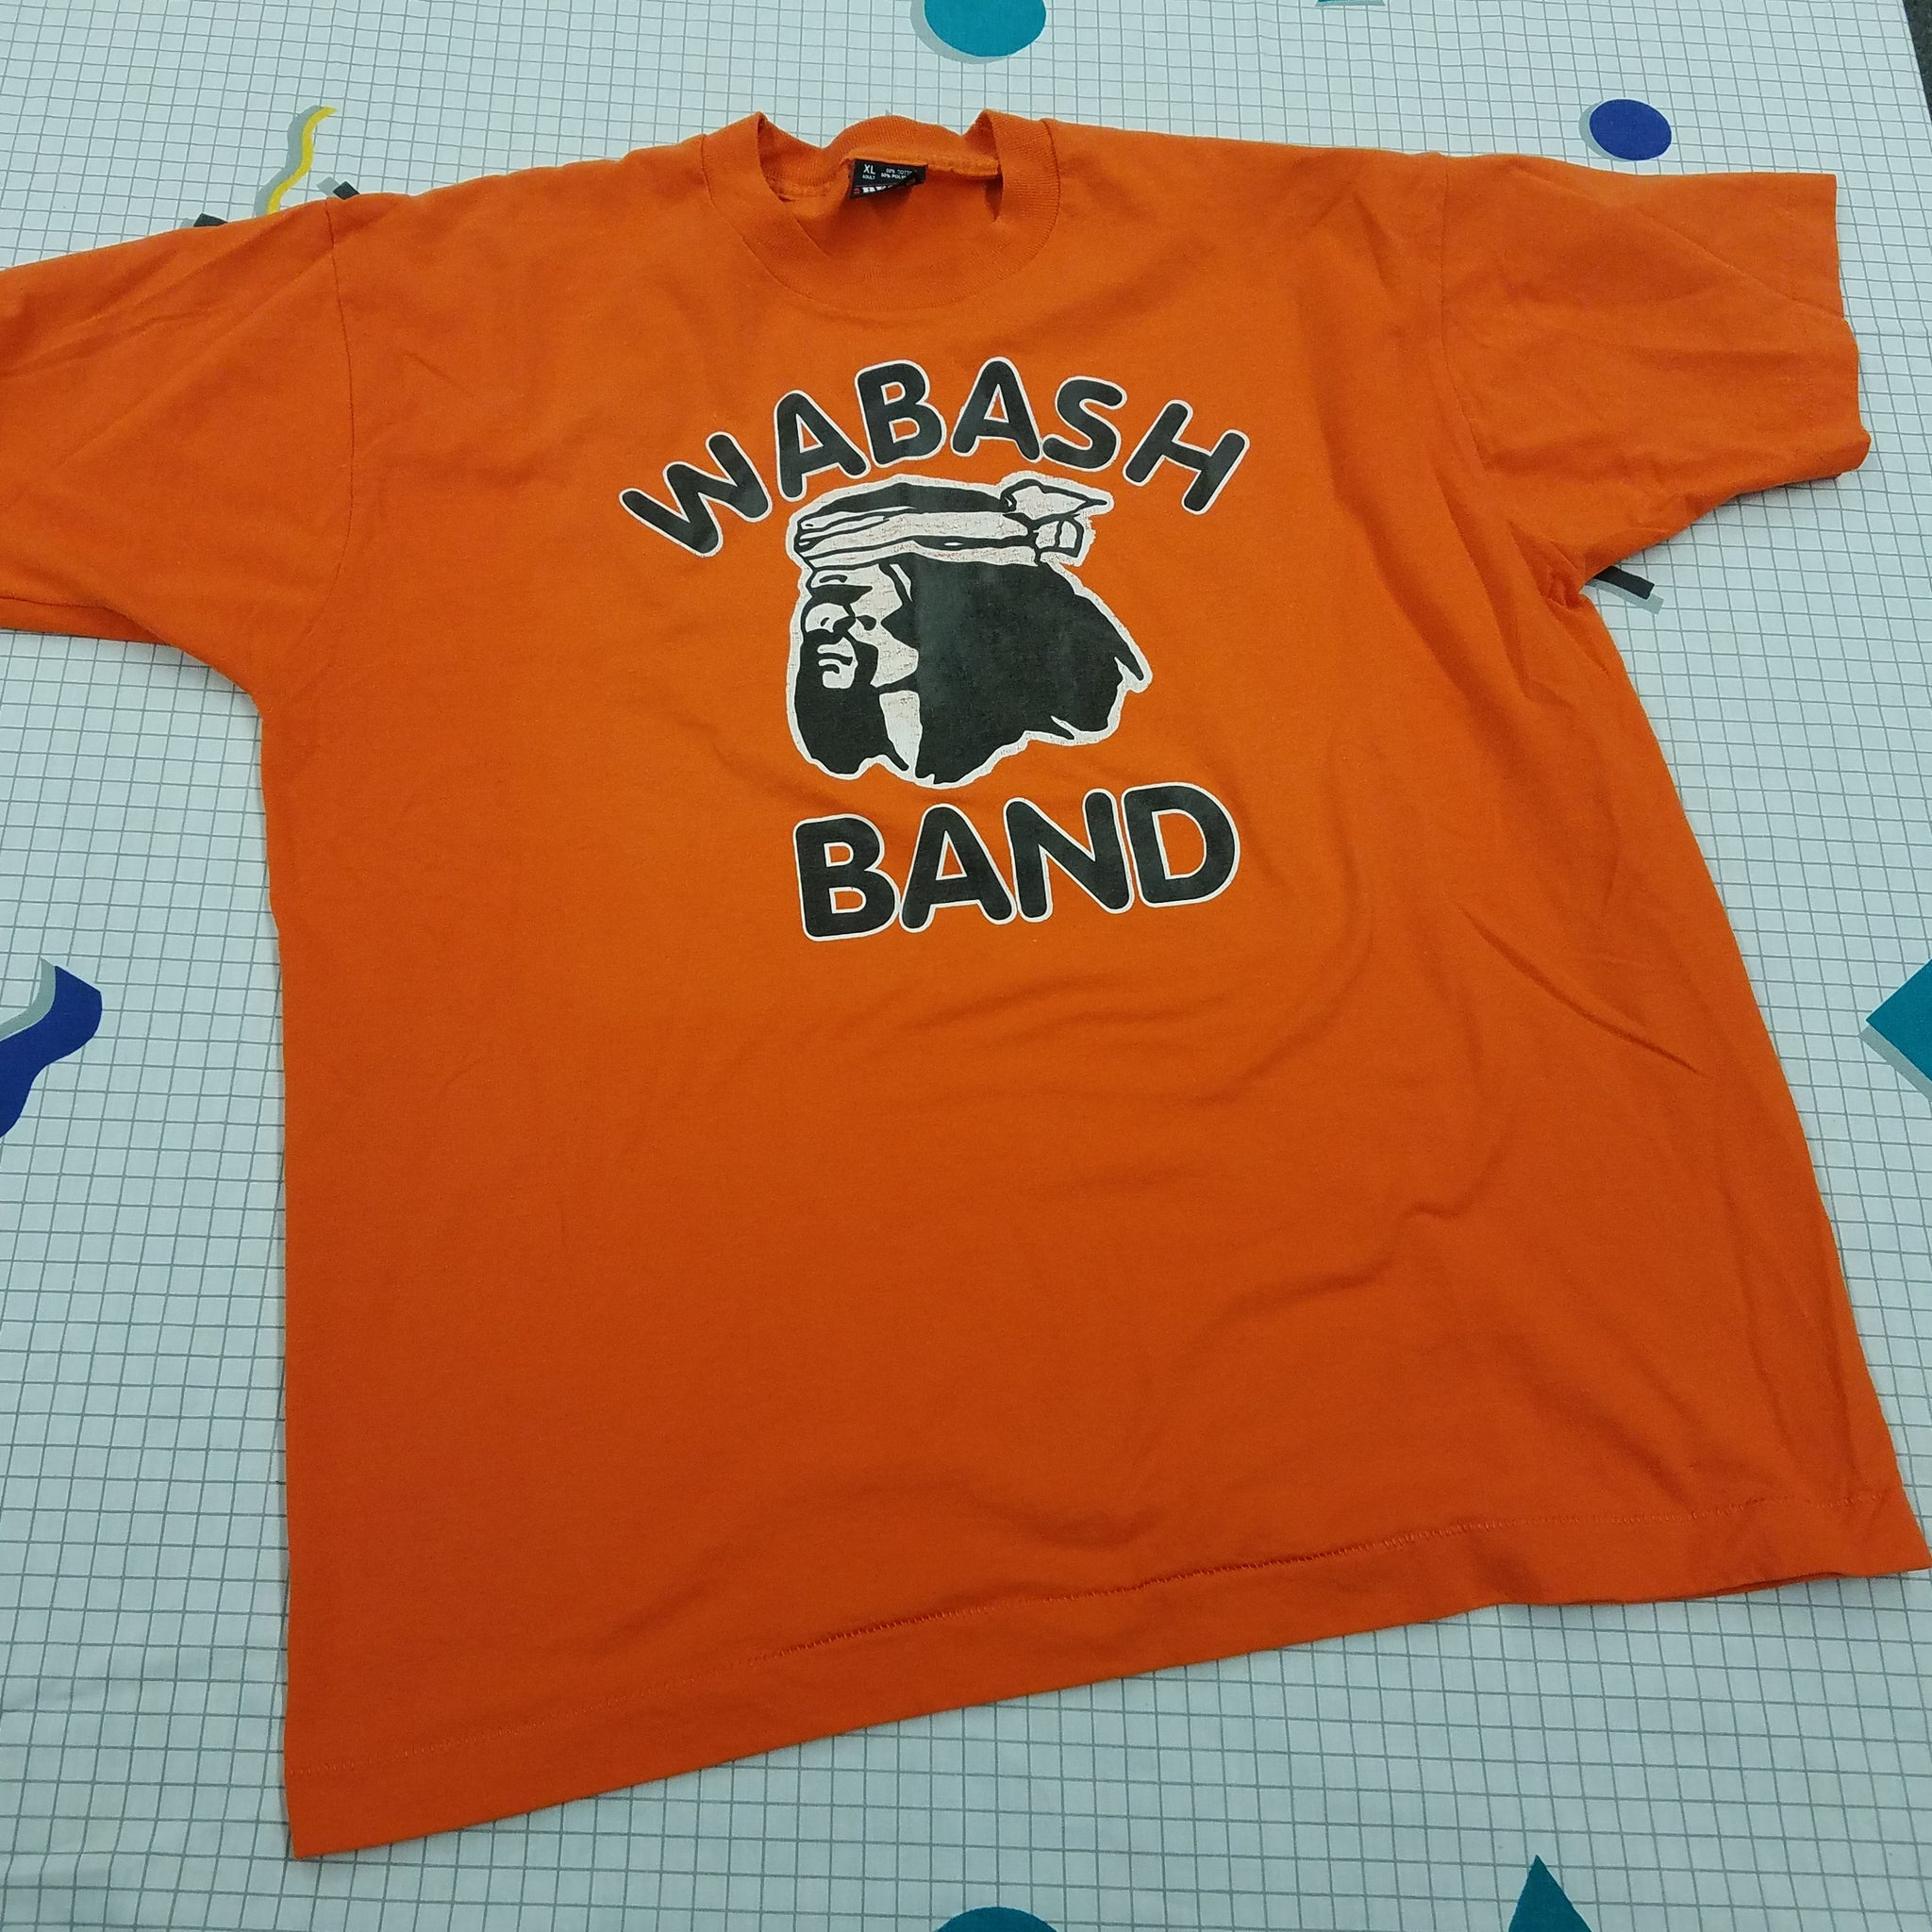 9d2aea19 The 25 Coolest Band T-Shirts Ever - ShortList